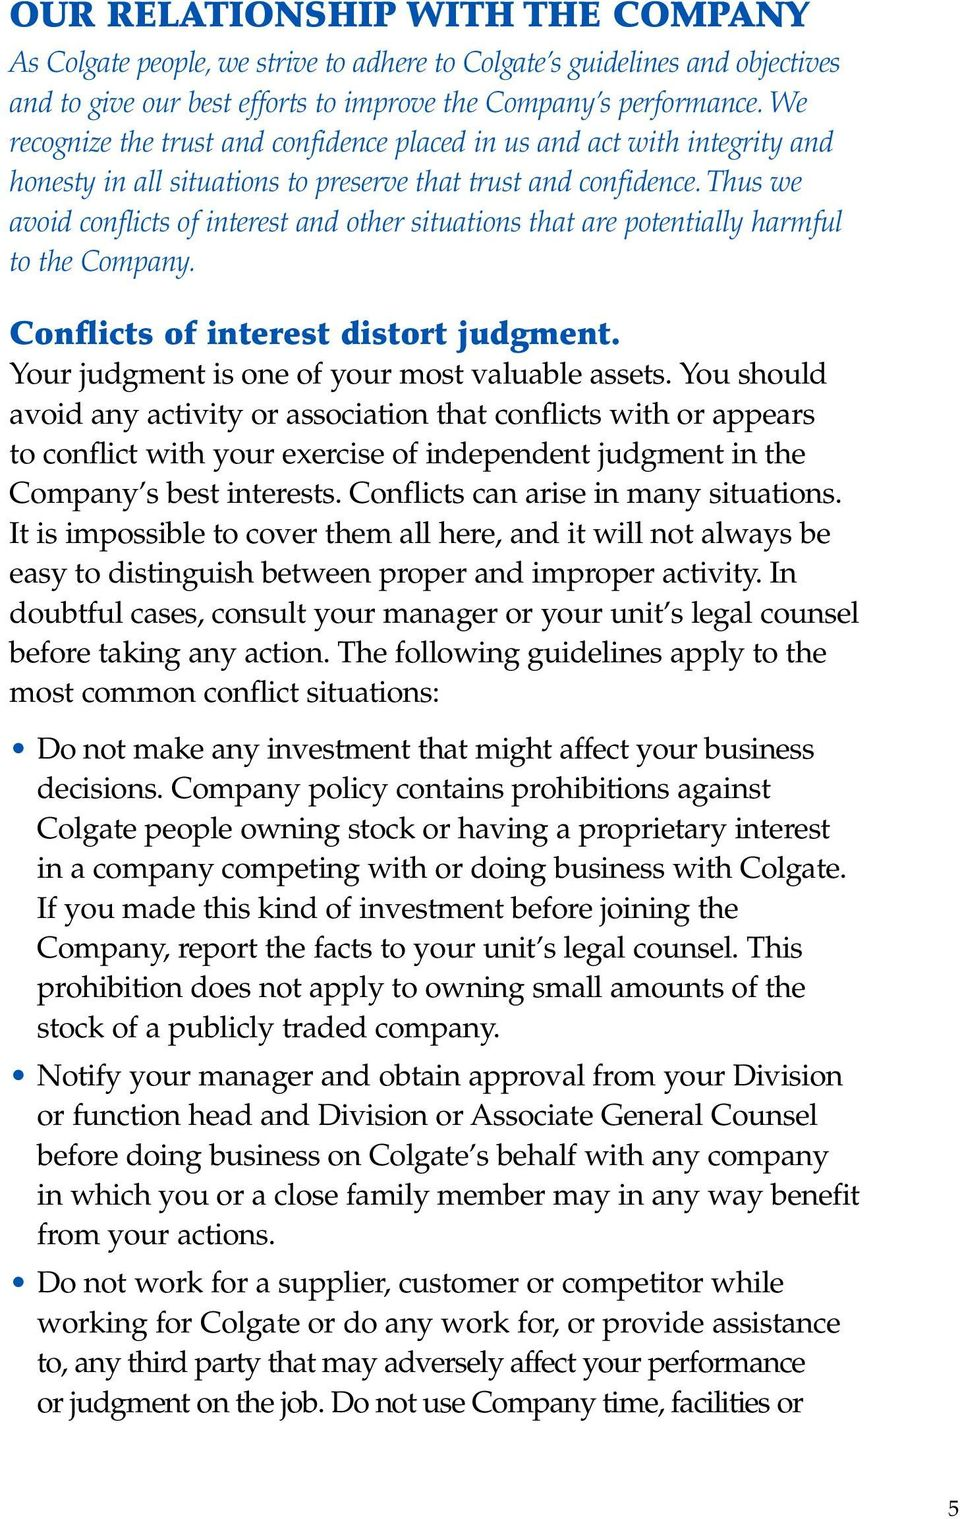 Thus we avoid conflicts of interest and other situations that are potentially harmful to the Company. Conflicts of interest distort judgment. Your judgment is one of your most valuable assets.